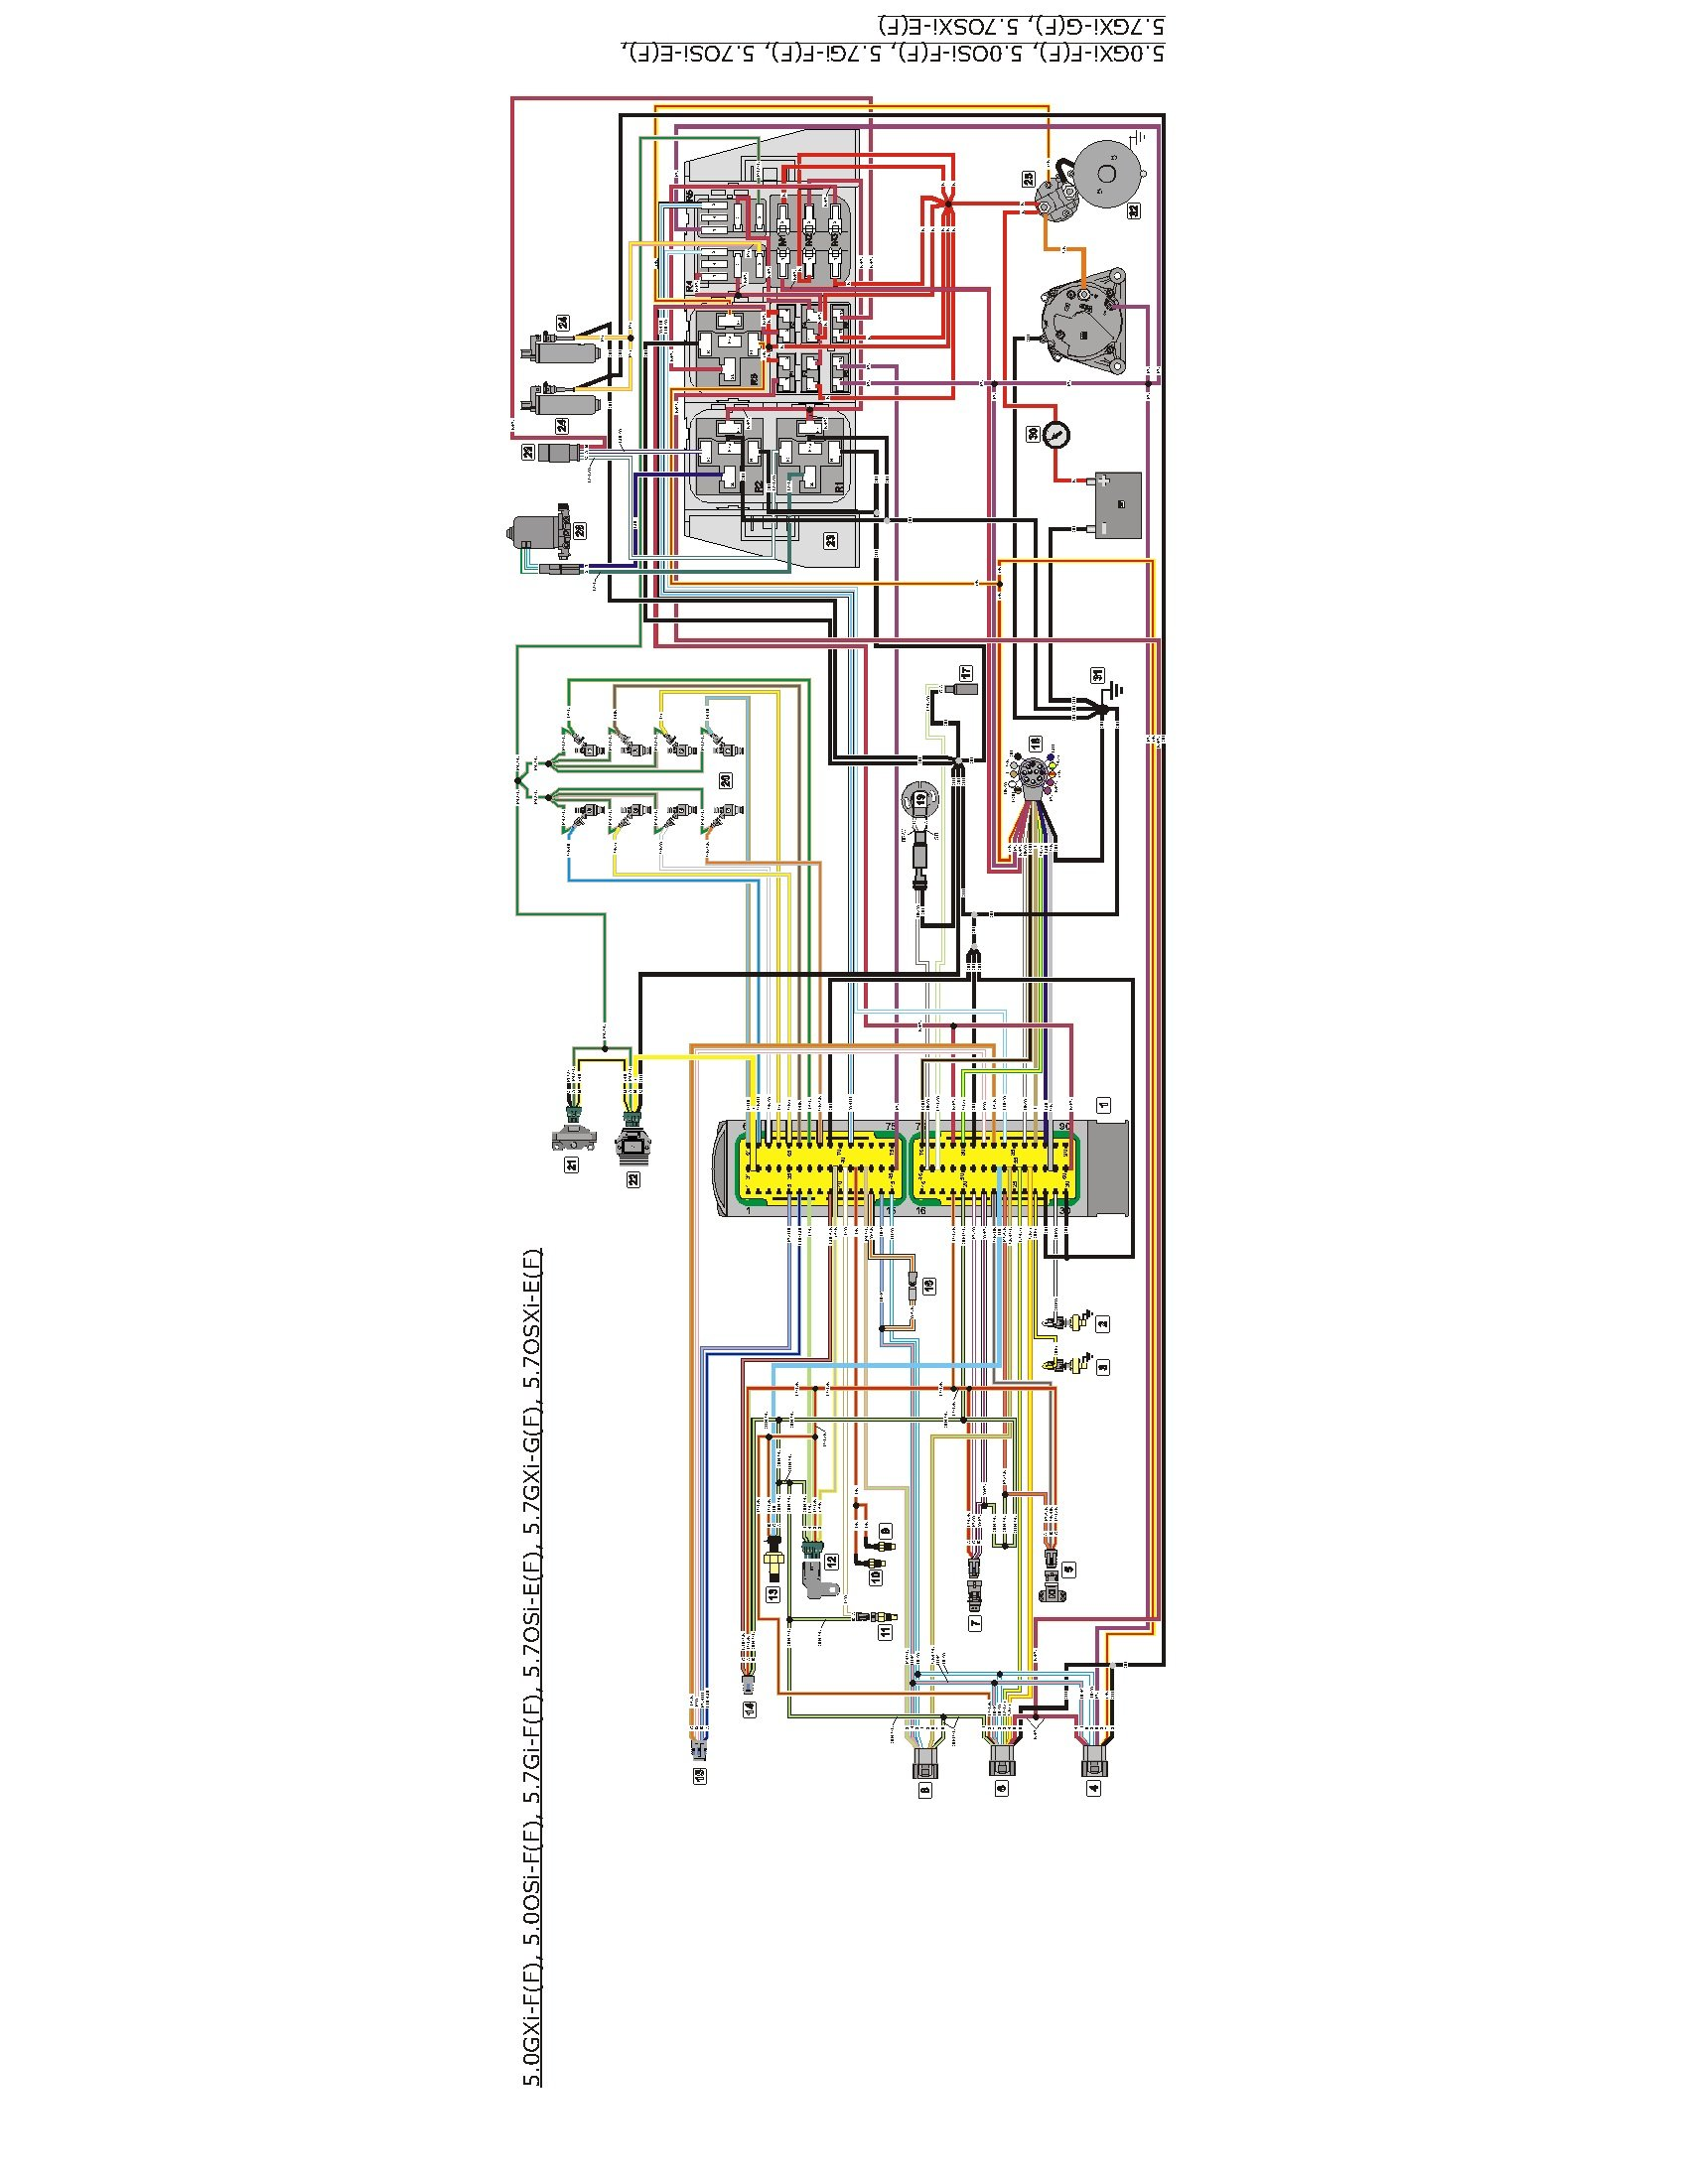 50-mercruiser-starter-wiring-diagram-12  Prong Ignition Switch Wiring Diagram on pontoon boat, harley softail, john deere lawn tractor, riding mower, universal 4 wire, chevy truck, cub cadet, tractor universal,